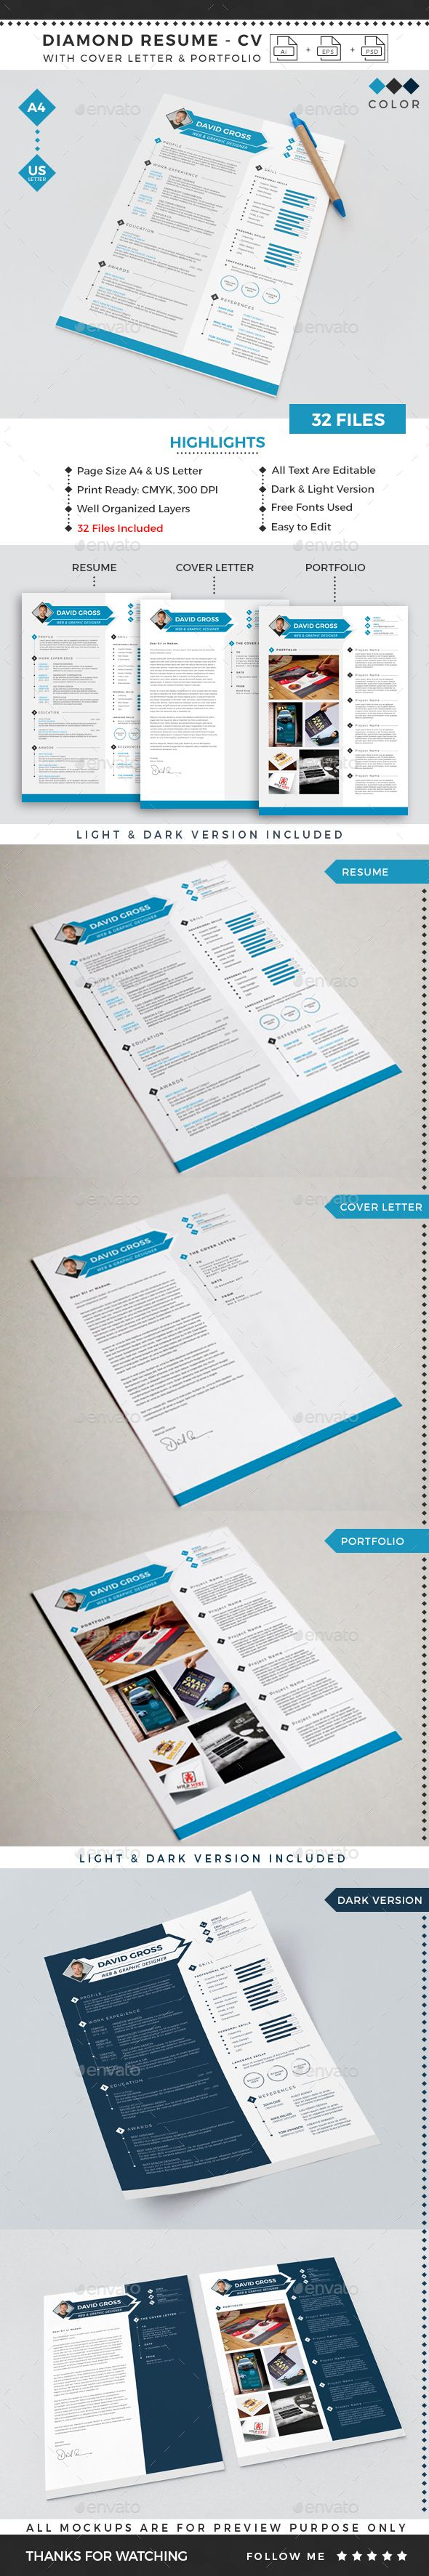 cv and covering letter%0A Diamond Resume CV Template